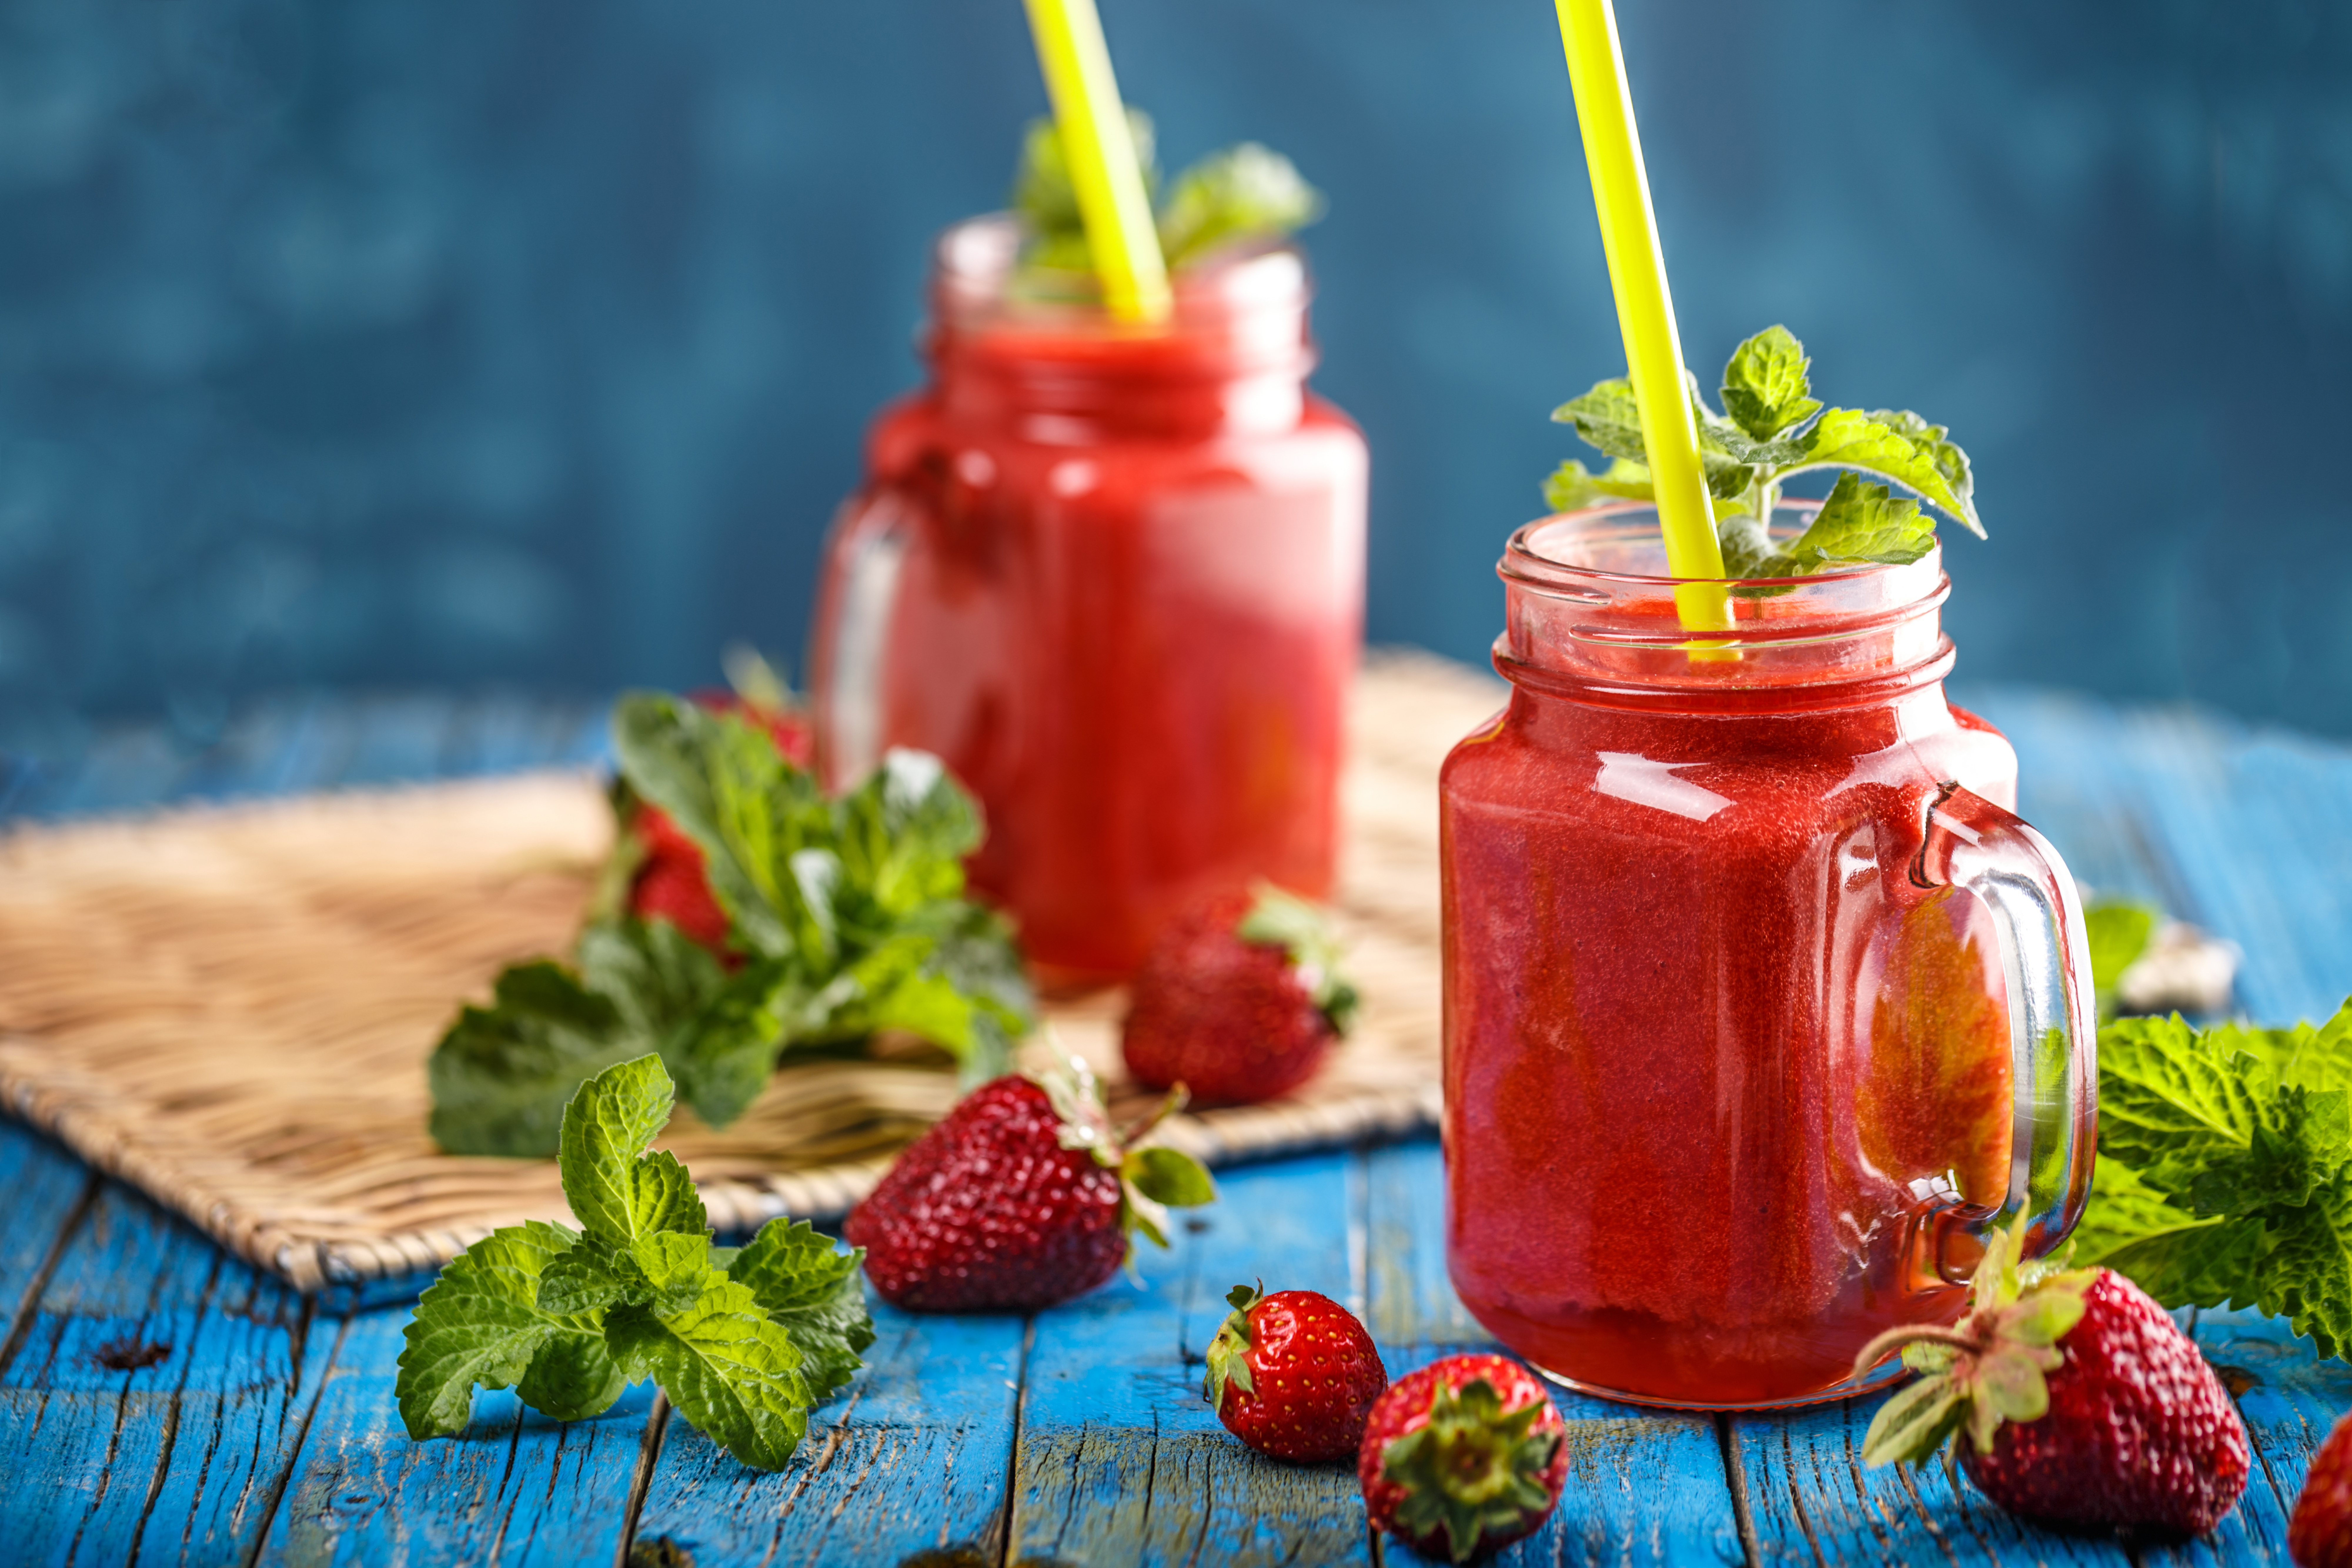 Smoothie Berry Fruit Smoothie Strawberry, HD Food, 4k